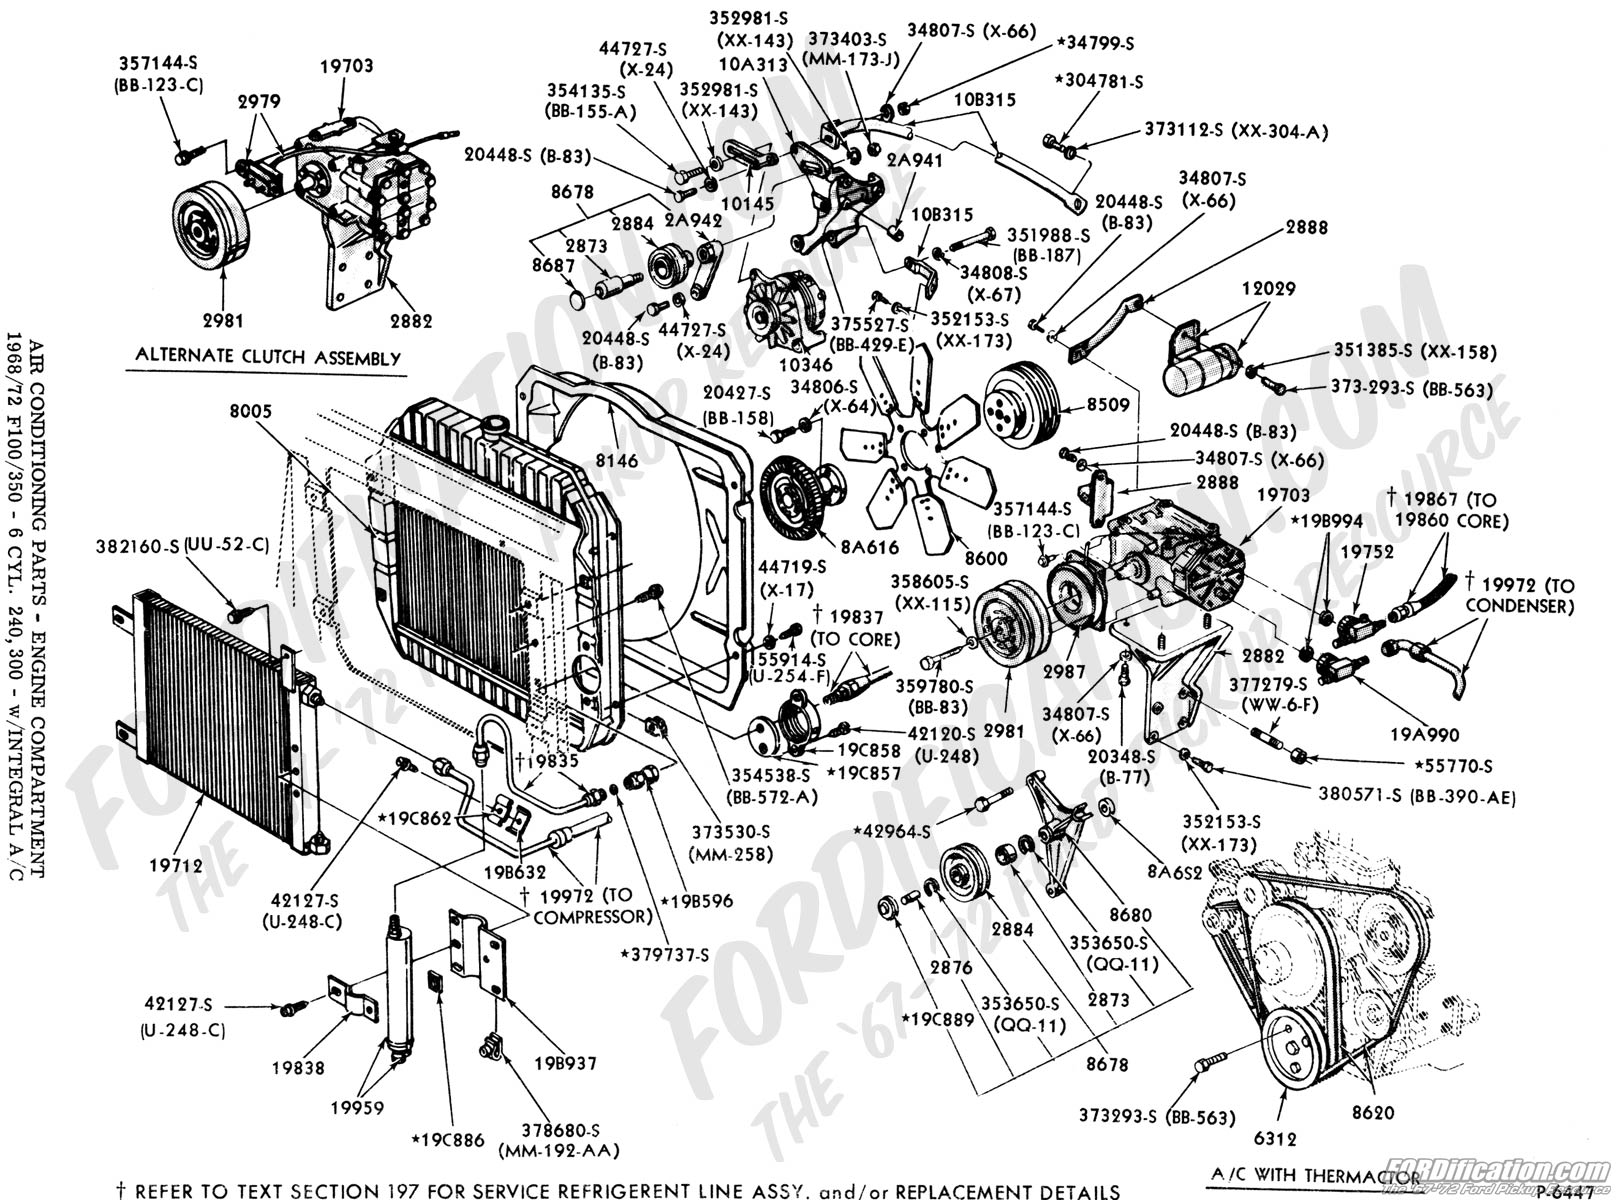 04 F350 Glow Plug Wiring Diagram on 1972 vw beetle fuse box diagram